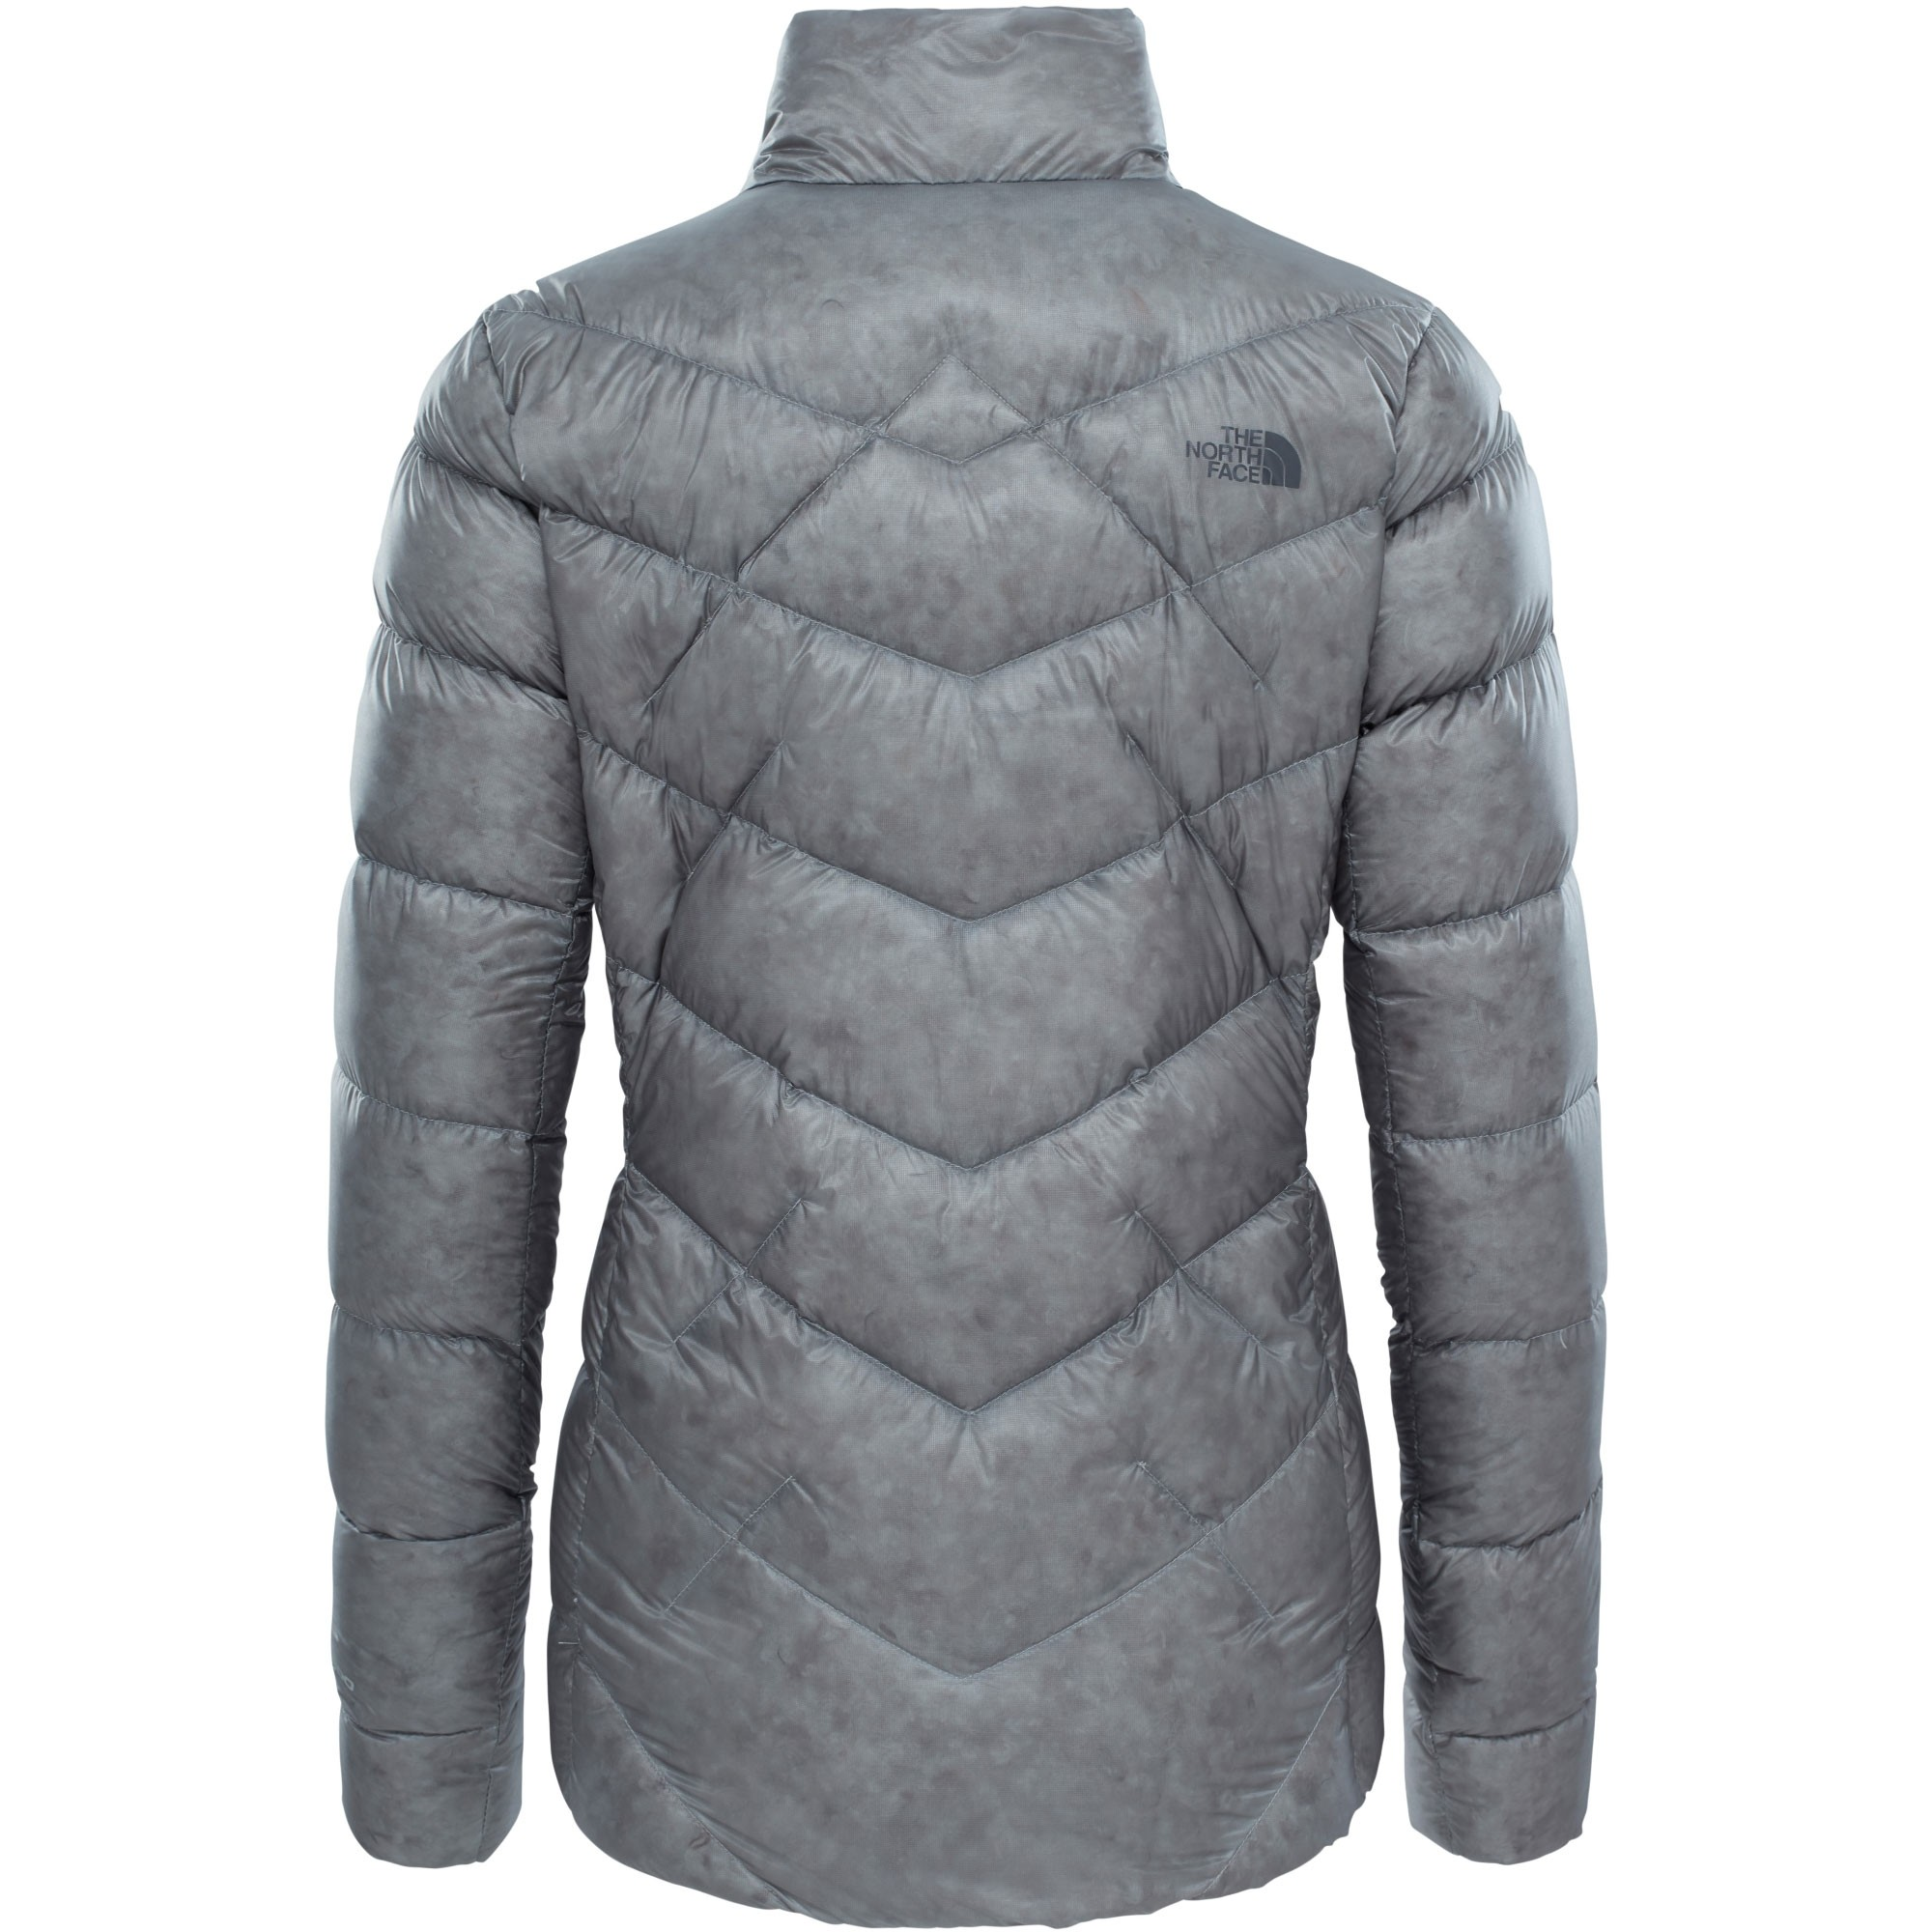 The-North-Face-Womens-Supercinco-Down-Jacket-Monument-Grey